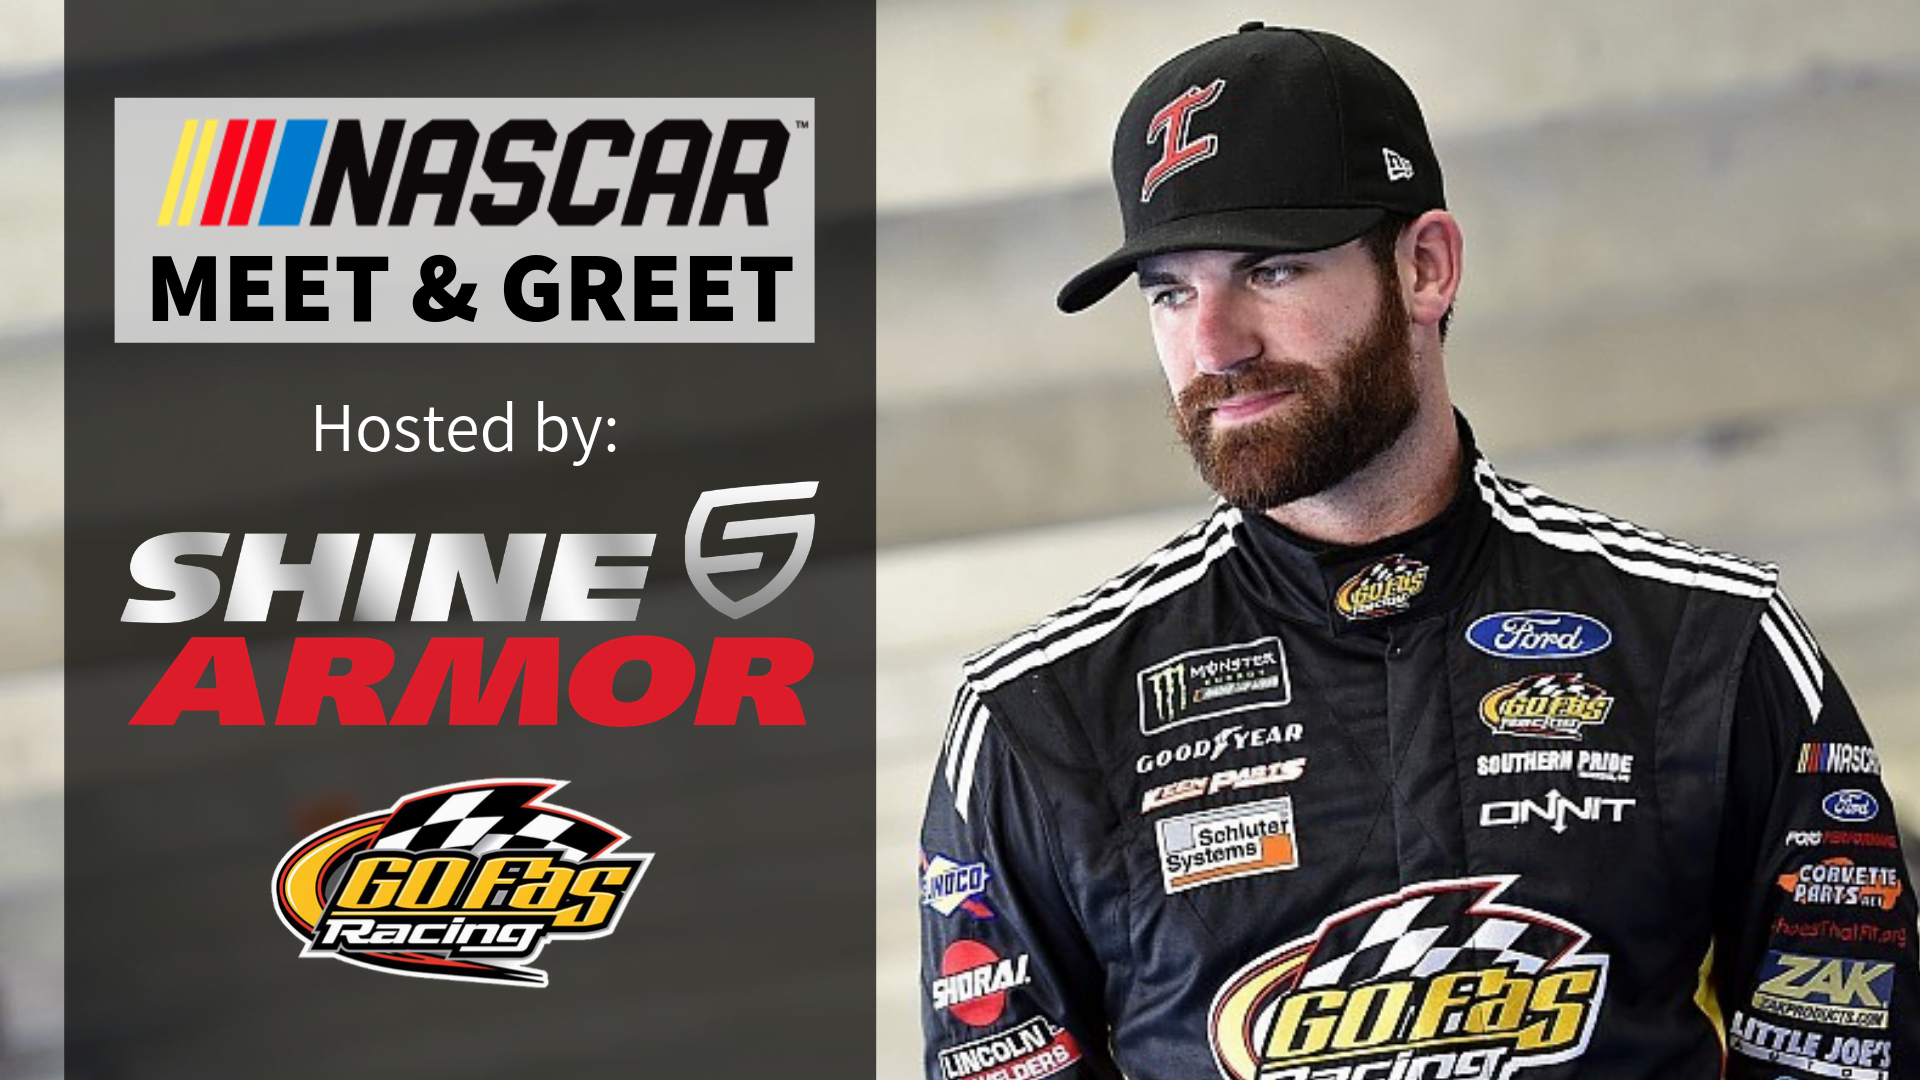 Join Six-Time NASCAR Winner Corey LaJoie at an Exclusive Meet & Greet Event